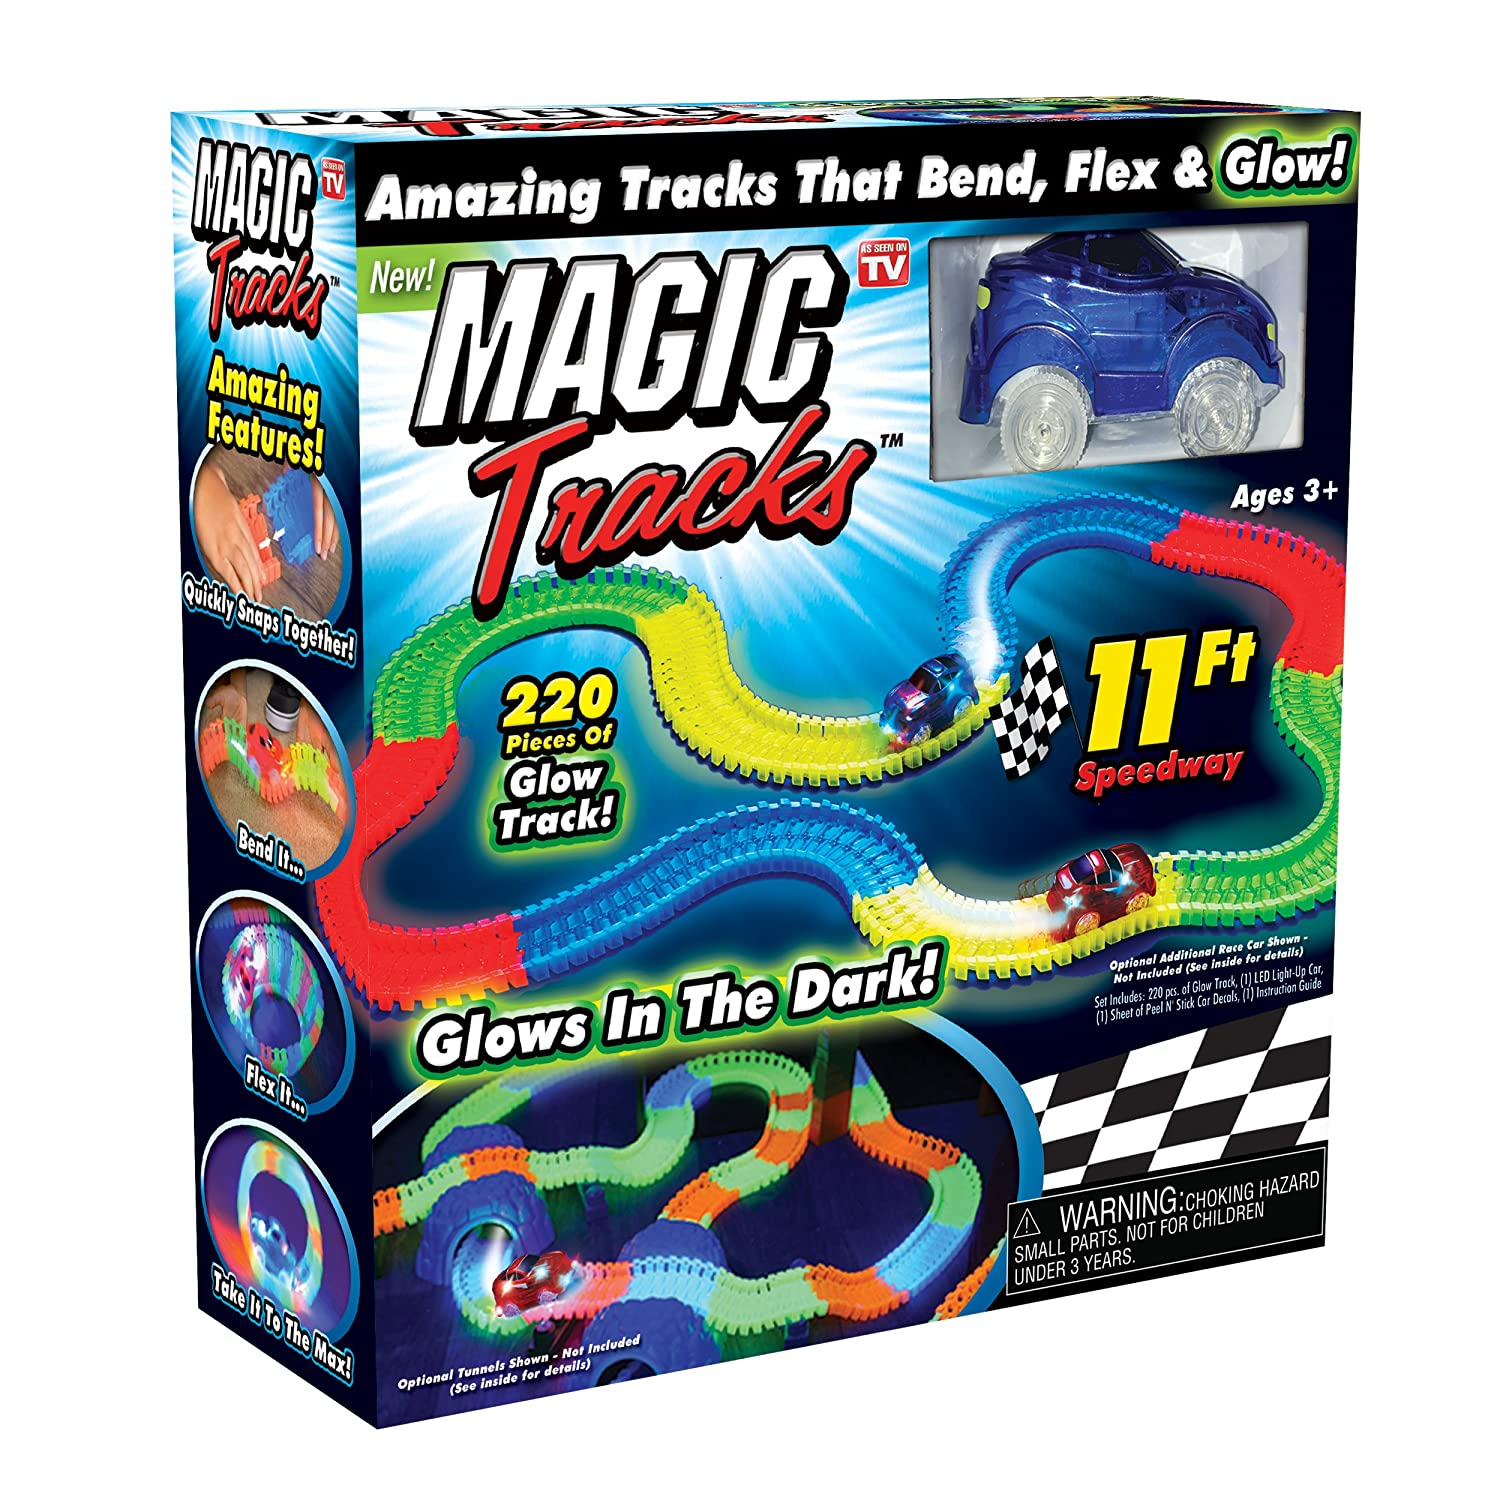 Ontel Magic Tracks The Amazing Racetrack That Can Bend, Flex and Glow - As Seen On TV